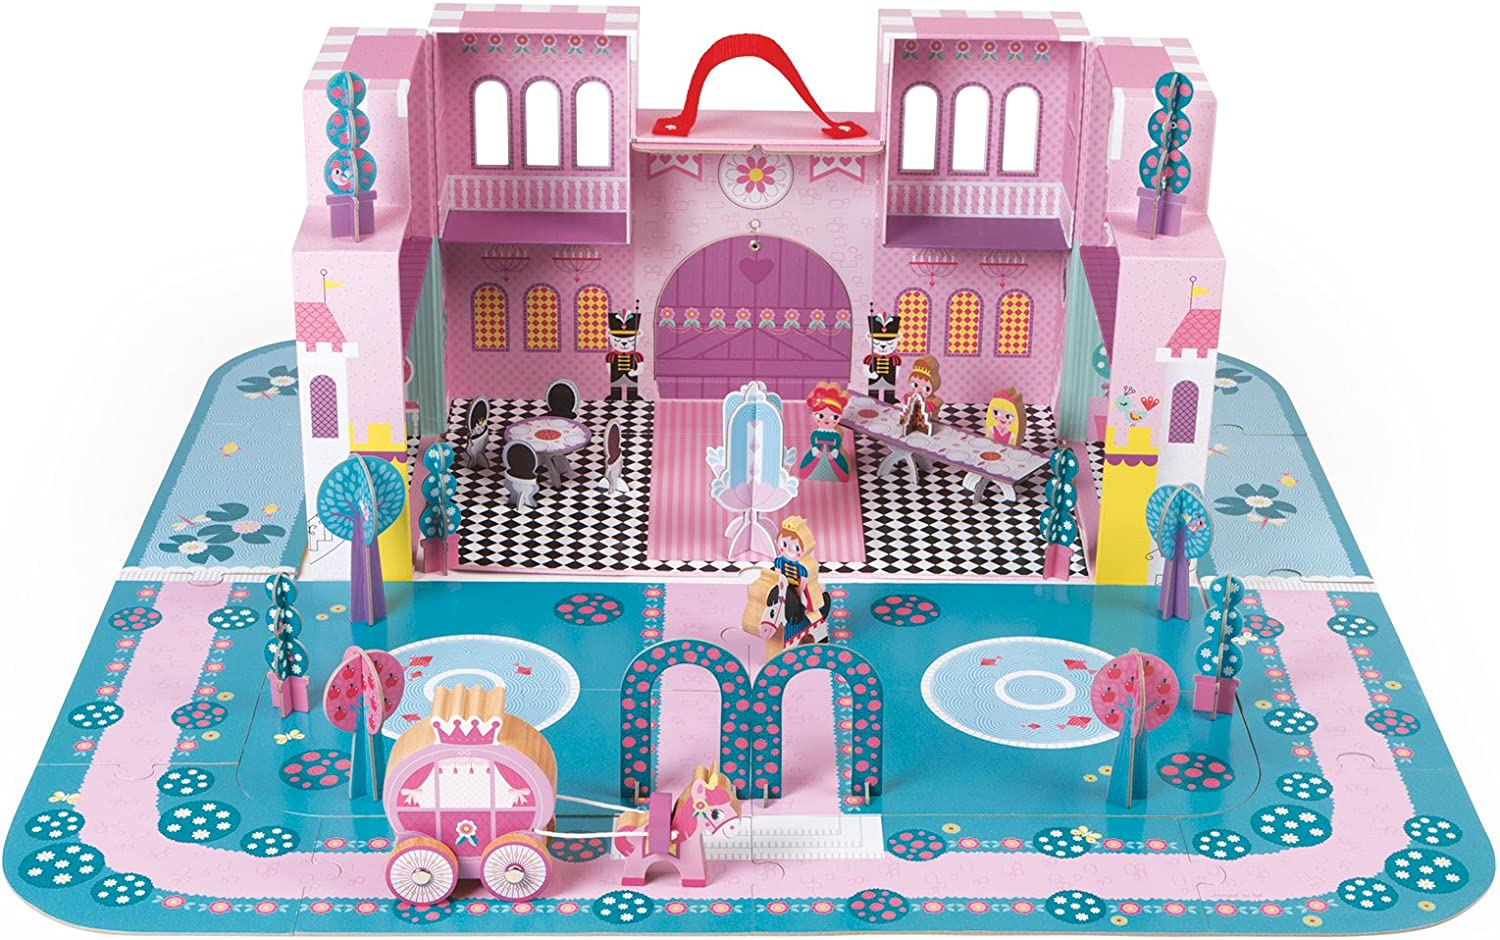 Janod Enchanted Castle Princess Palace Playset with Carrying Case-Colorful 2 - Level Castle with Reversible Puzzle Play Mat and 28 Accessories - Encourages Kids to Imagine, Invent and Create-Ages 4+